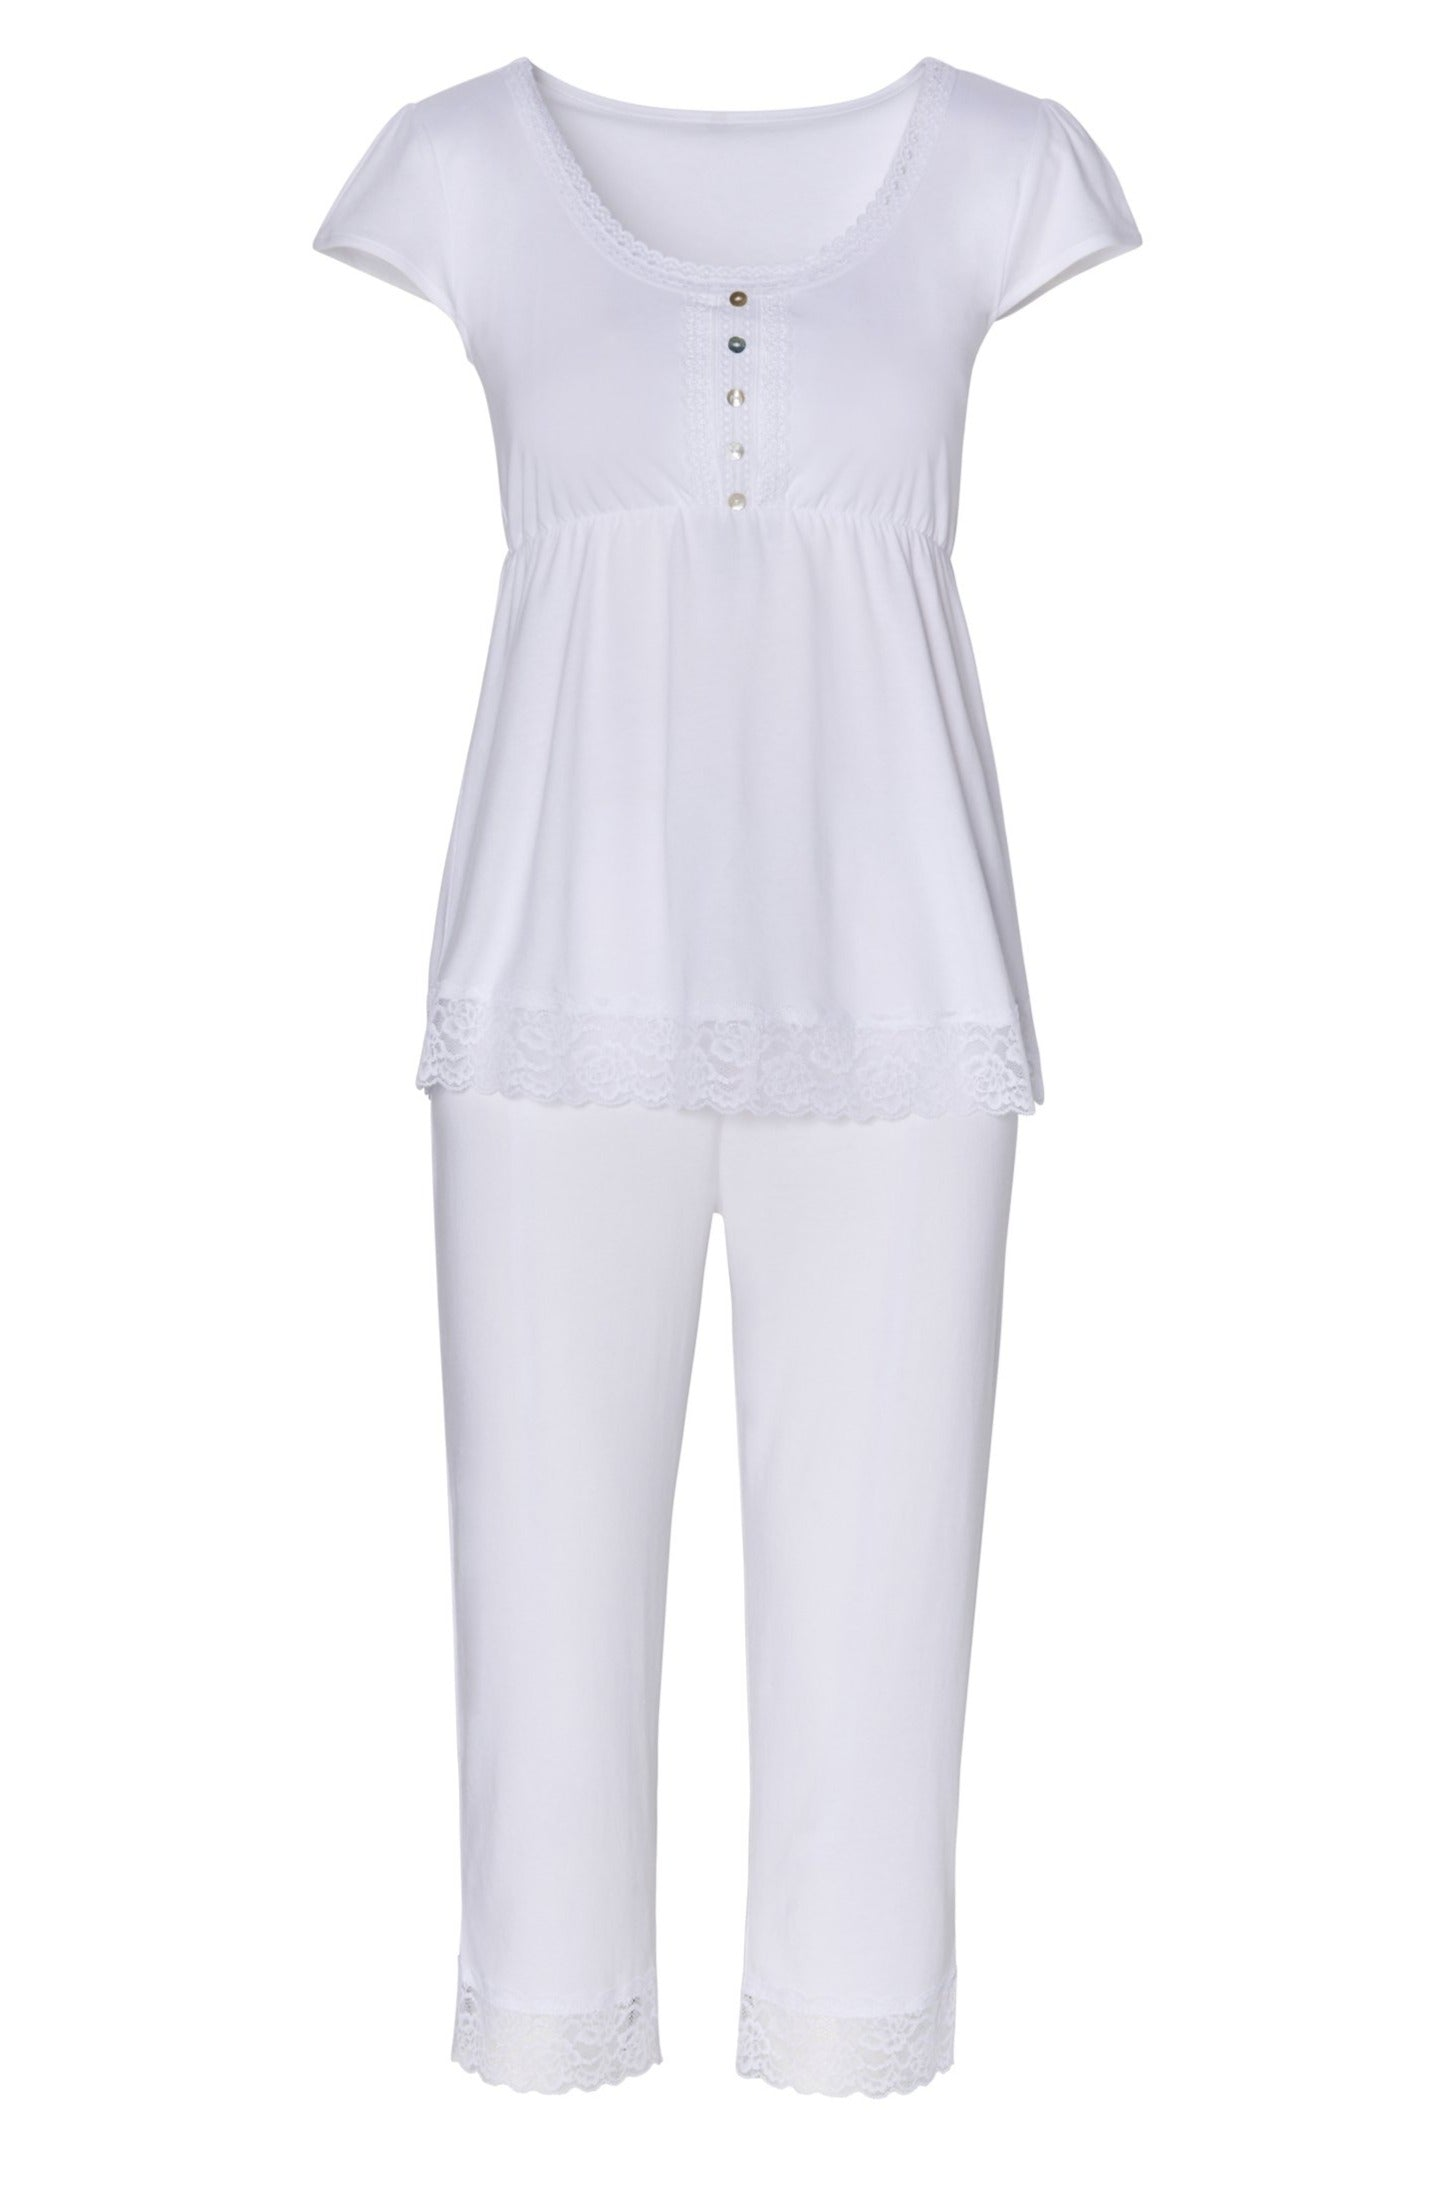 Sophie Basic Cap Sleeve Top Cropped Pant PJ Set - Sales Rack